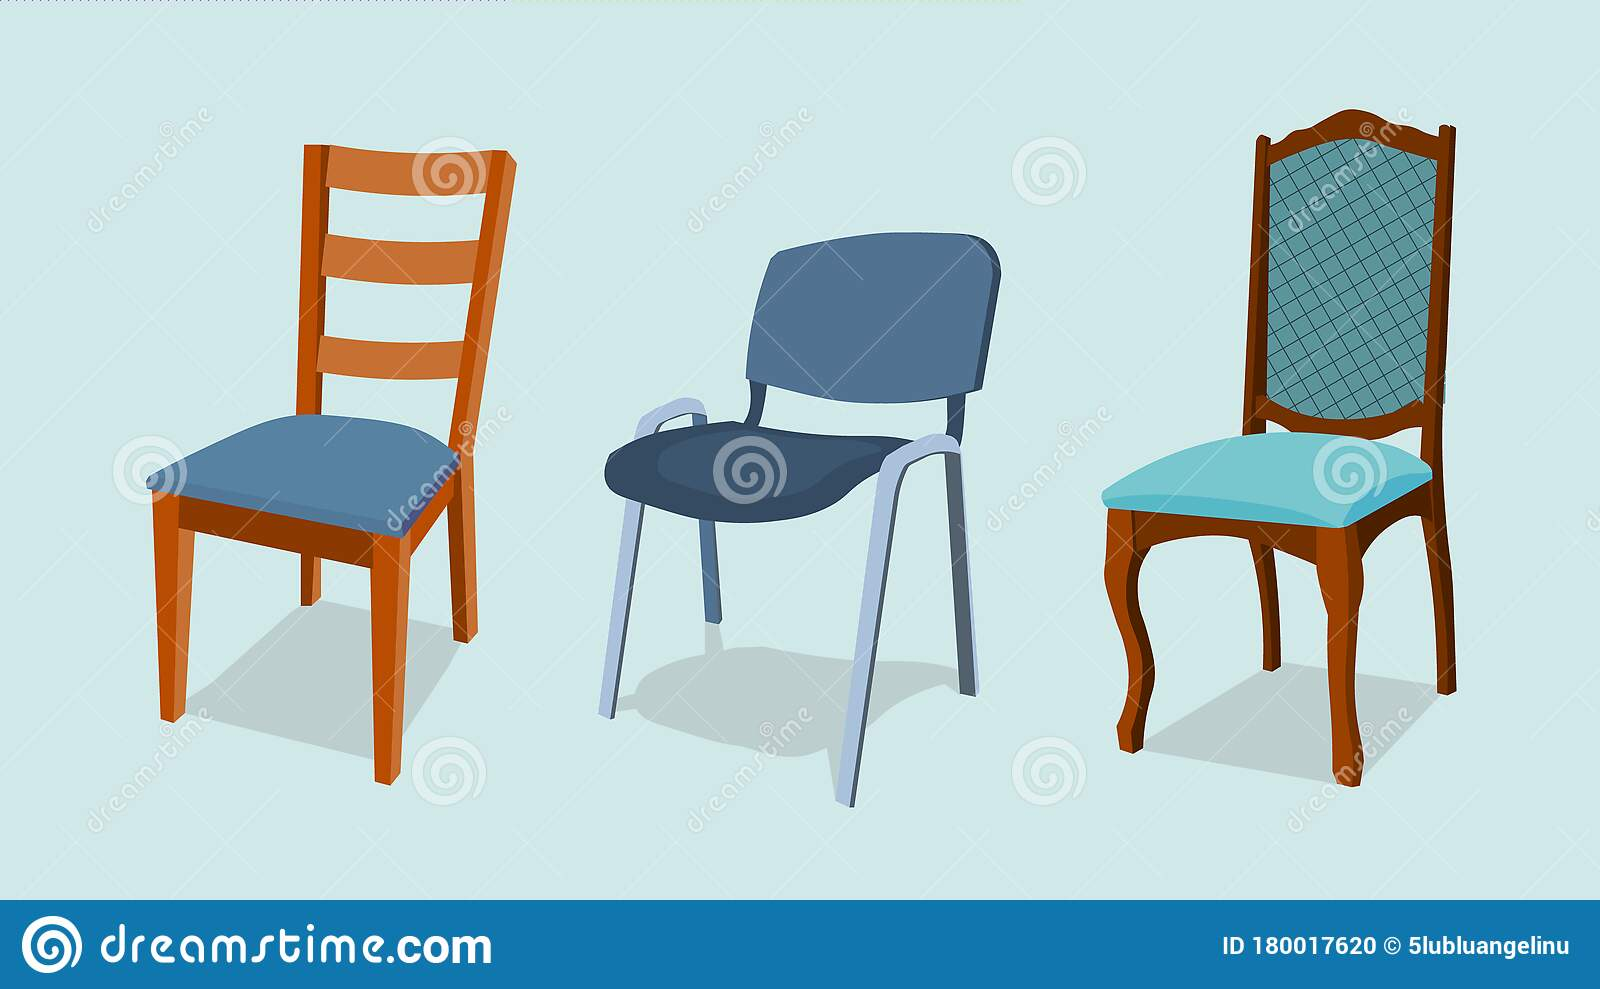 Chair Set Interior Design Illustration Collection Set Of Elements Designer Trendy Furniture Modern And Retro Stock Illustration Illustration Of Decor Kitchen 180017620